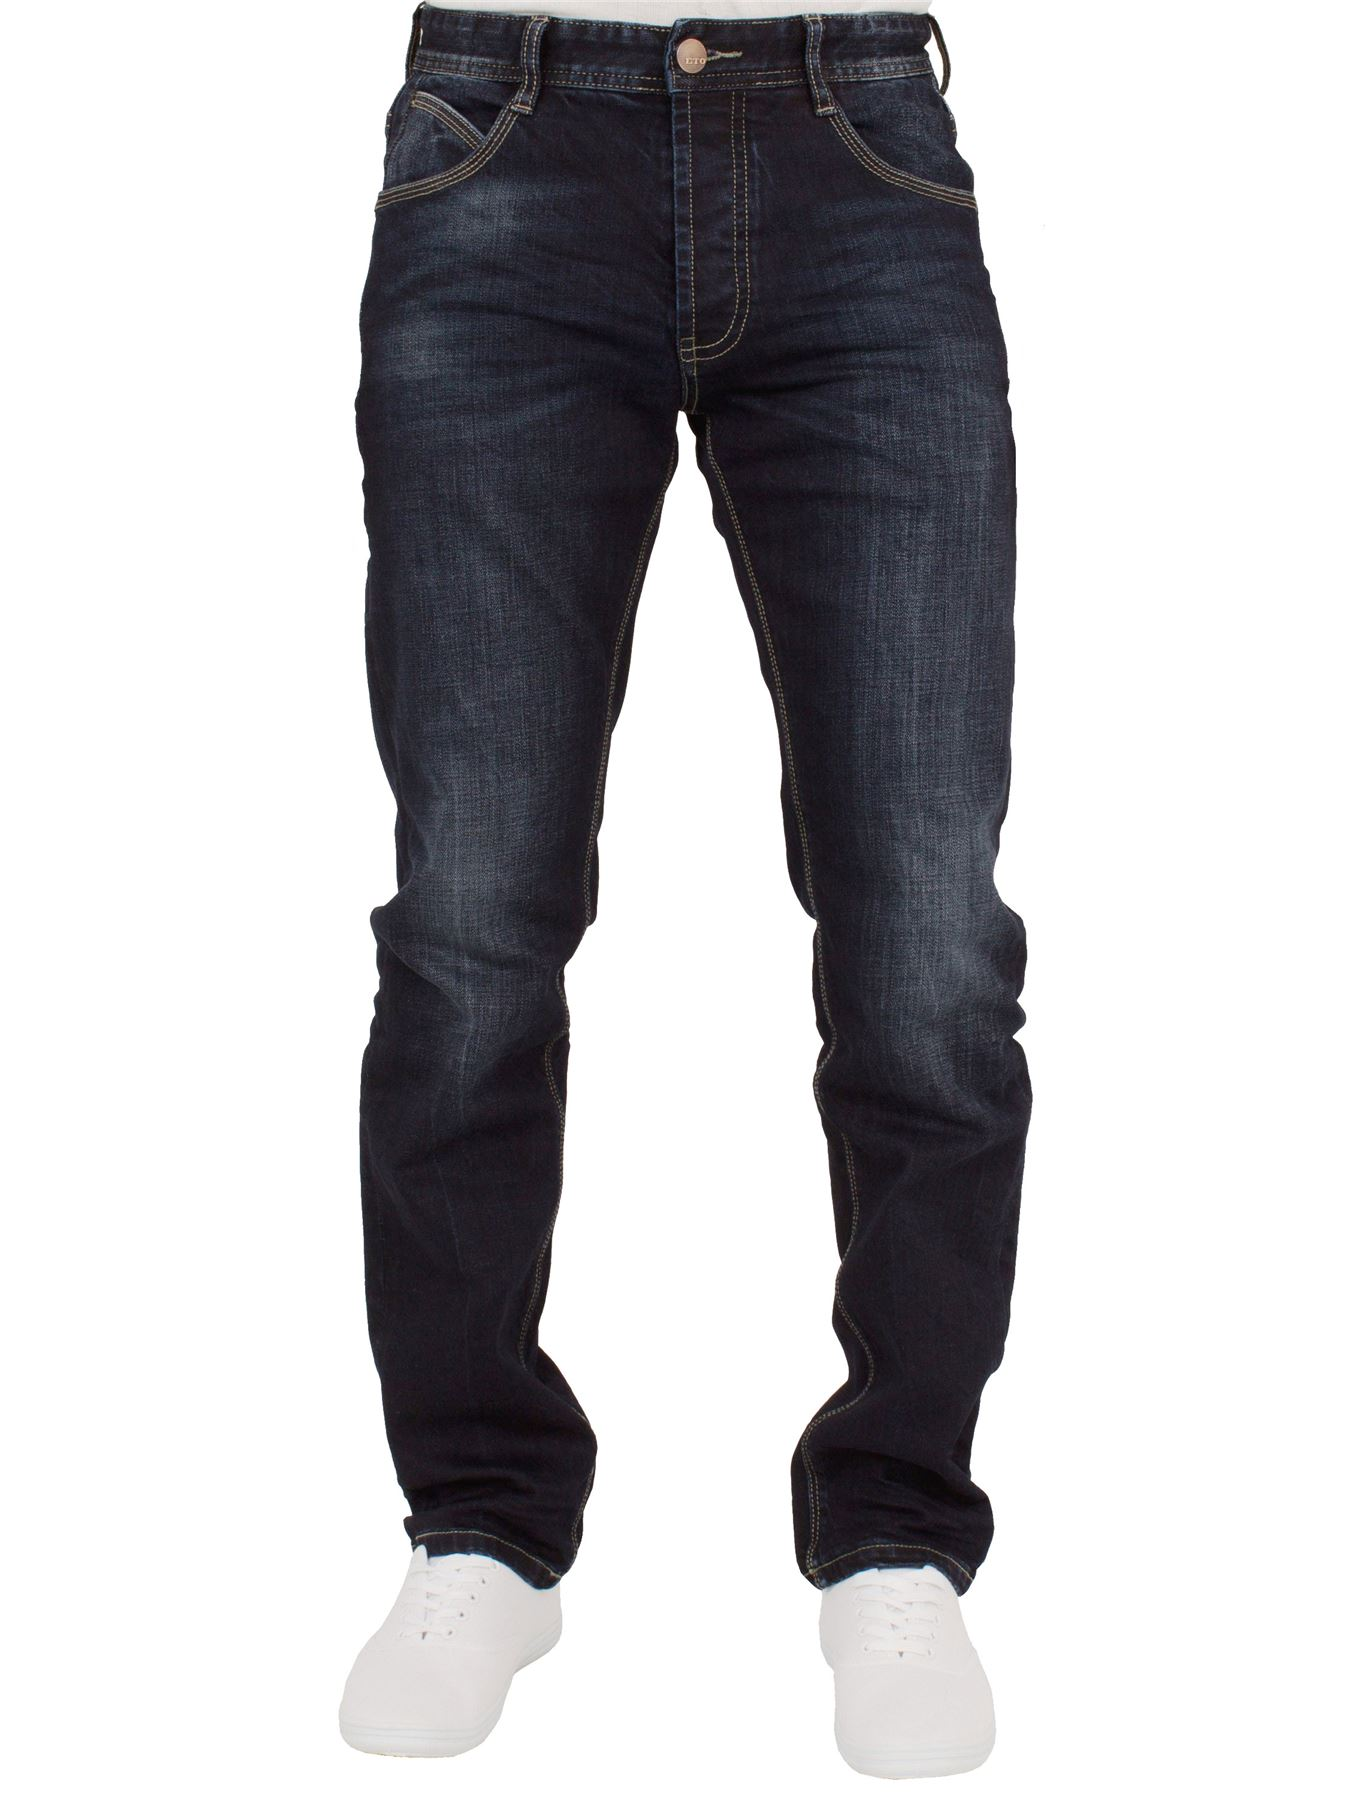 Eto-Designer-Mens-Tapered-Jeans-Slim-Fit-Stretch-Denim-Trouser-Pants-All-Waists thumbnail 15